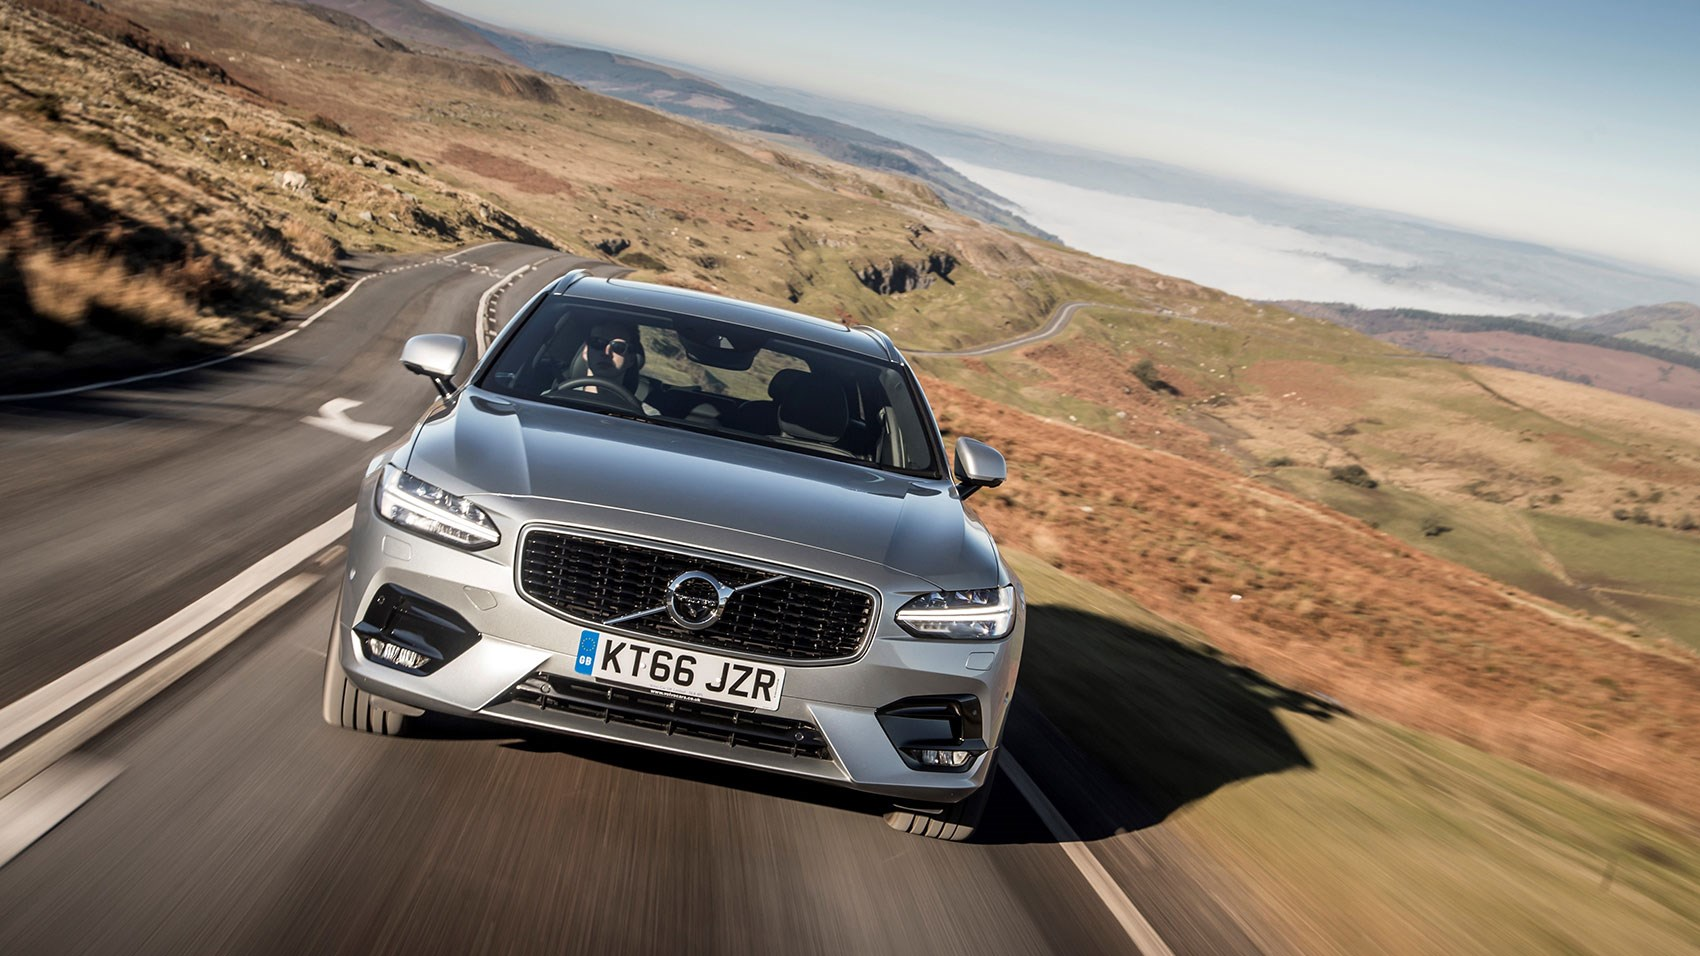 Black grille and accoutrements distinguish Volvo V90 R-Design